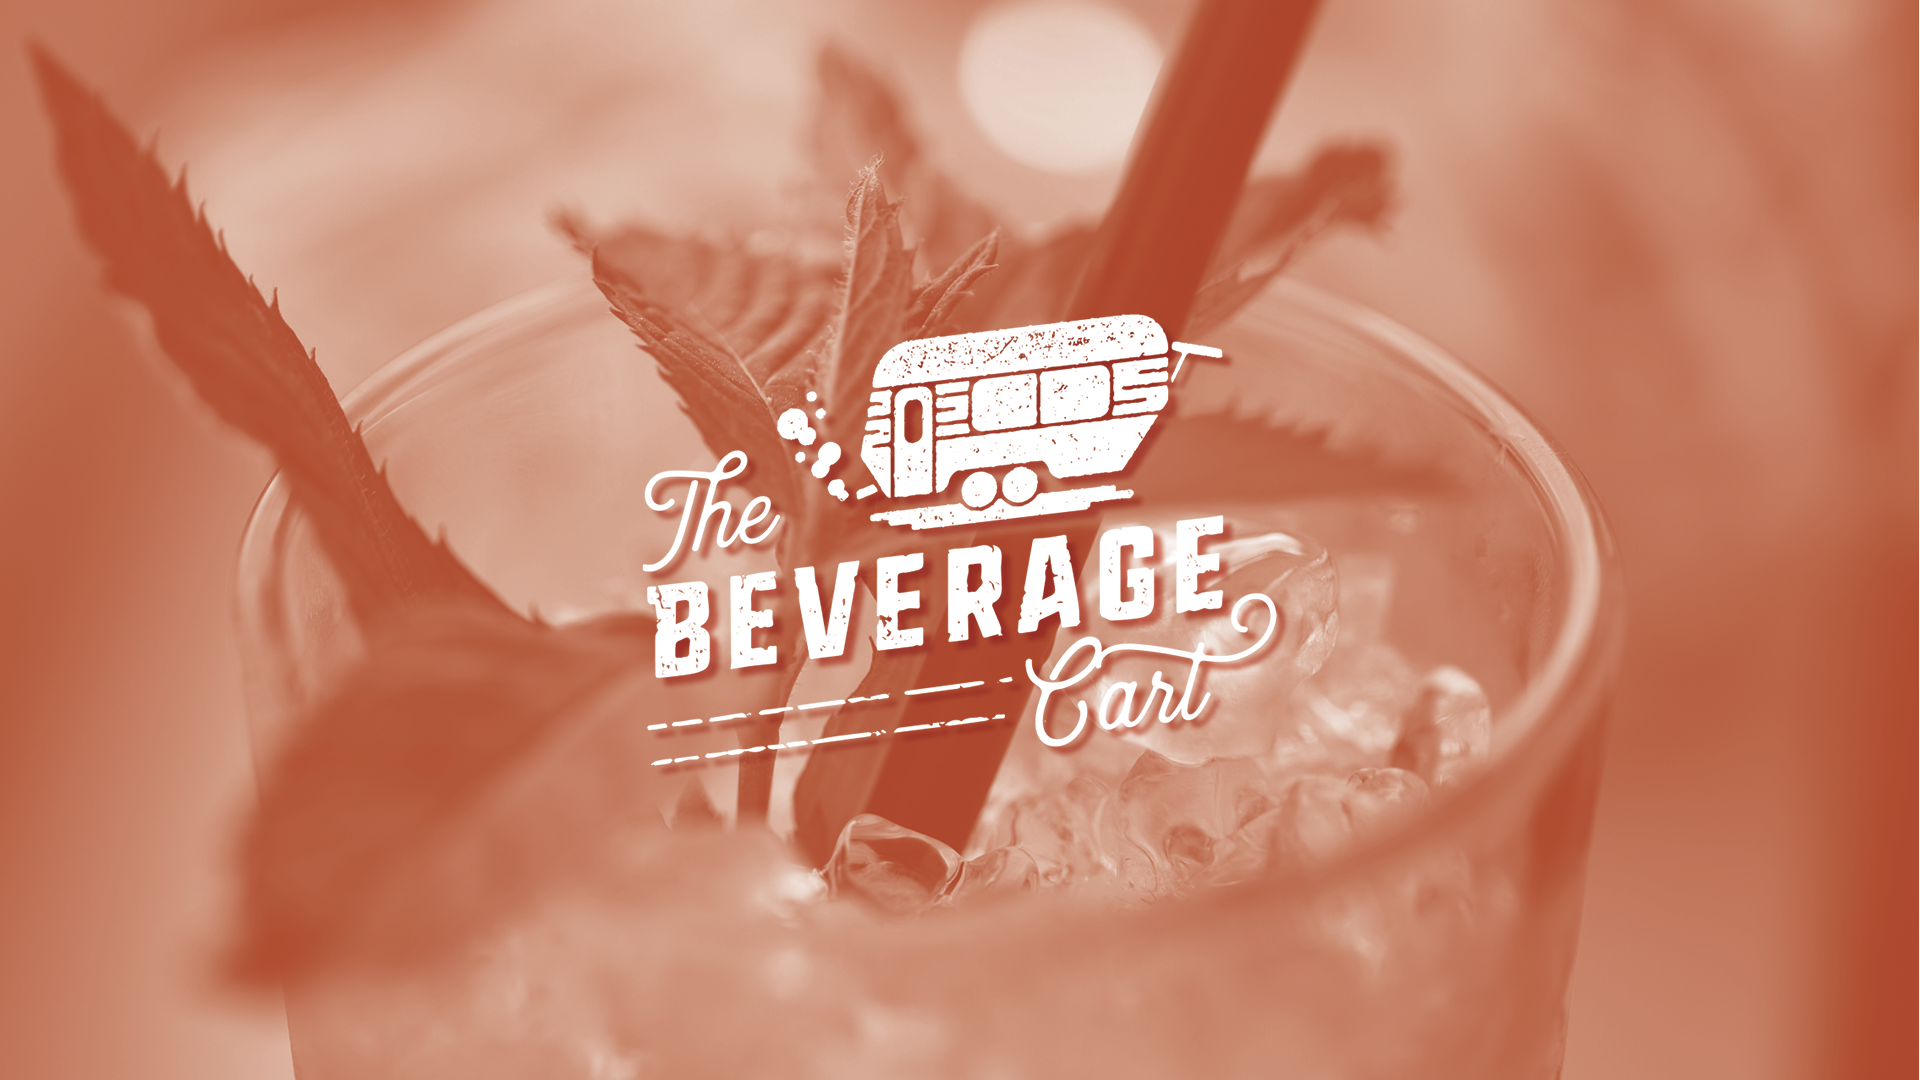 The Beverage Cart -